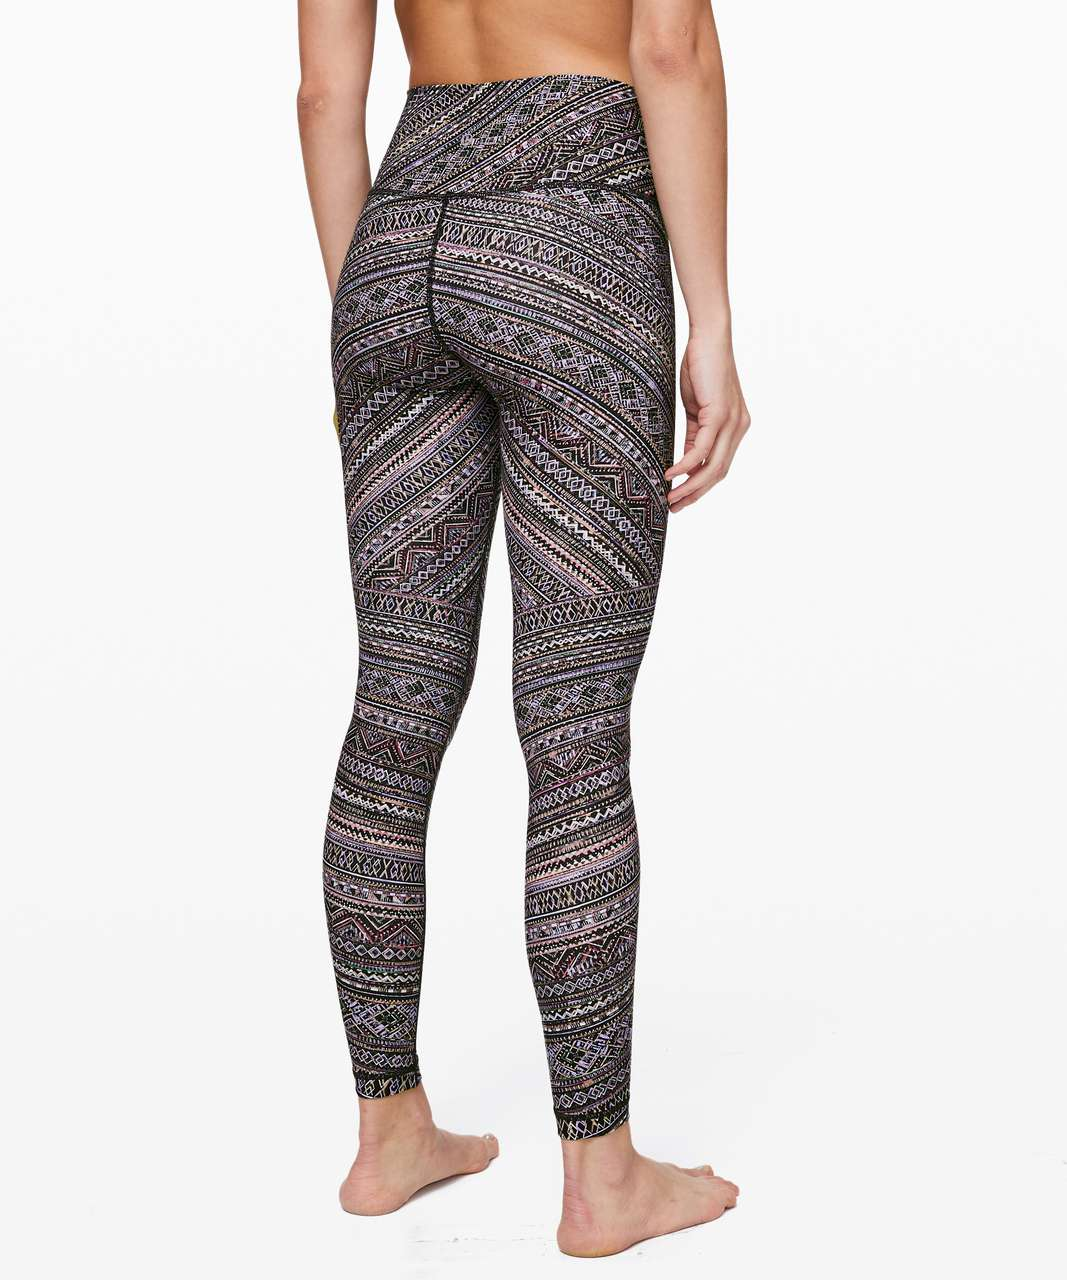 "Lululemon Wunder Under High-Rise Tight *Engineered Full-On Luxtreme 28"" - Tribal Pace Wunder Under White Black"